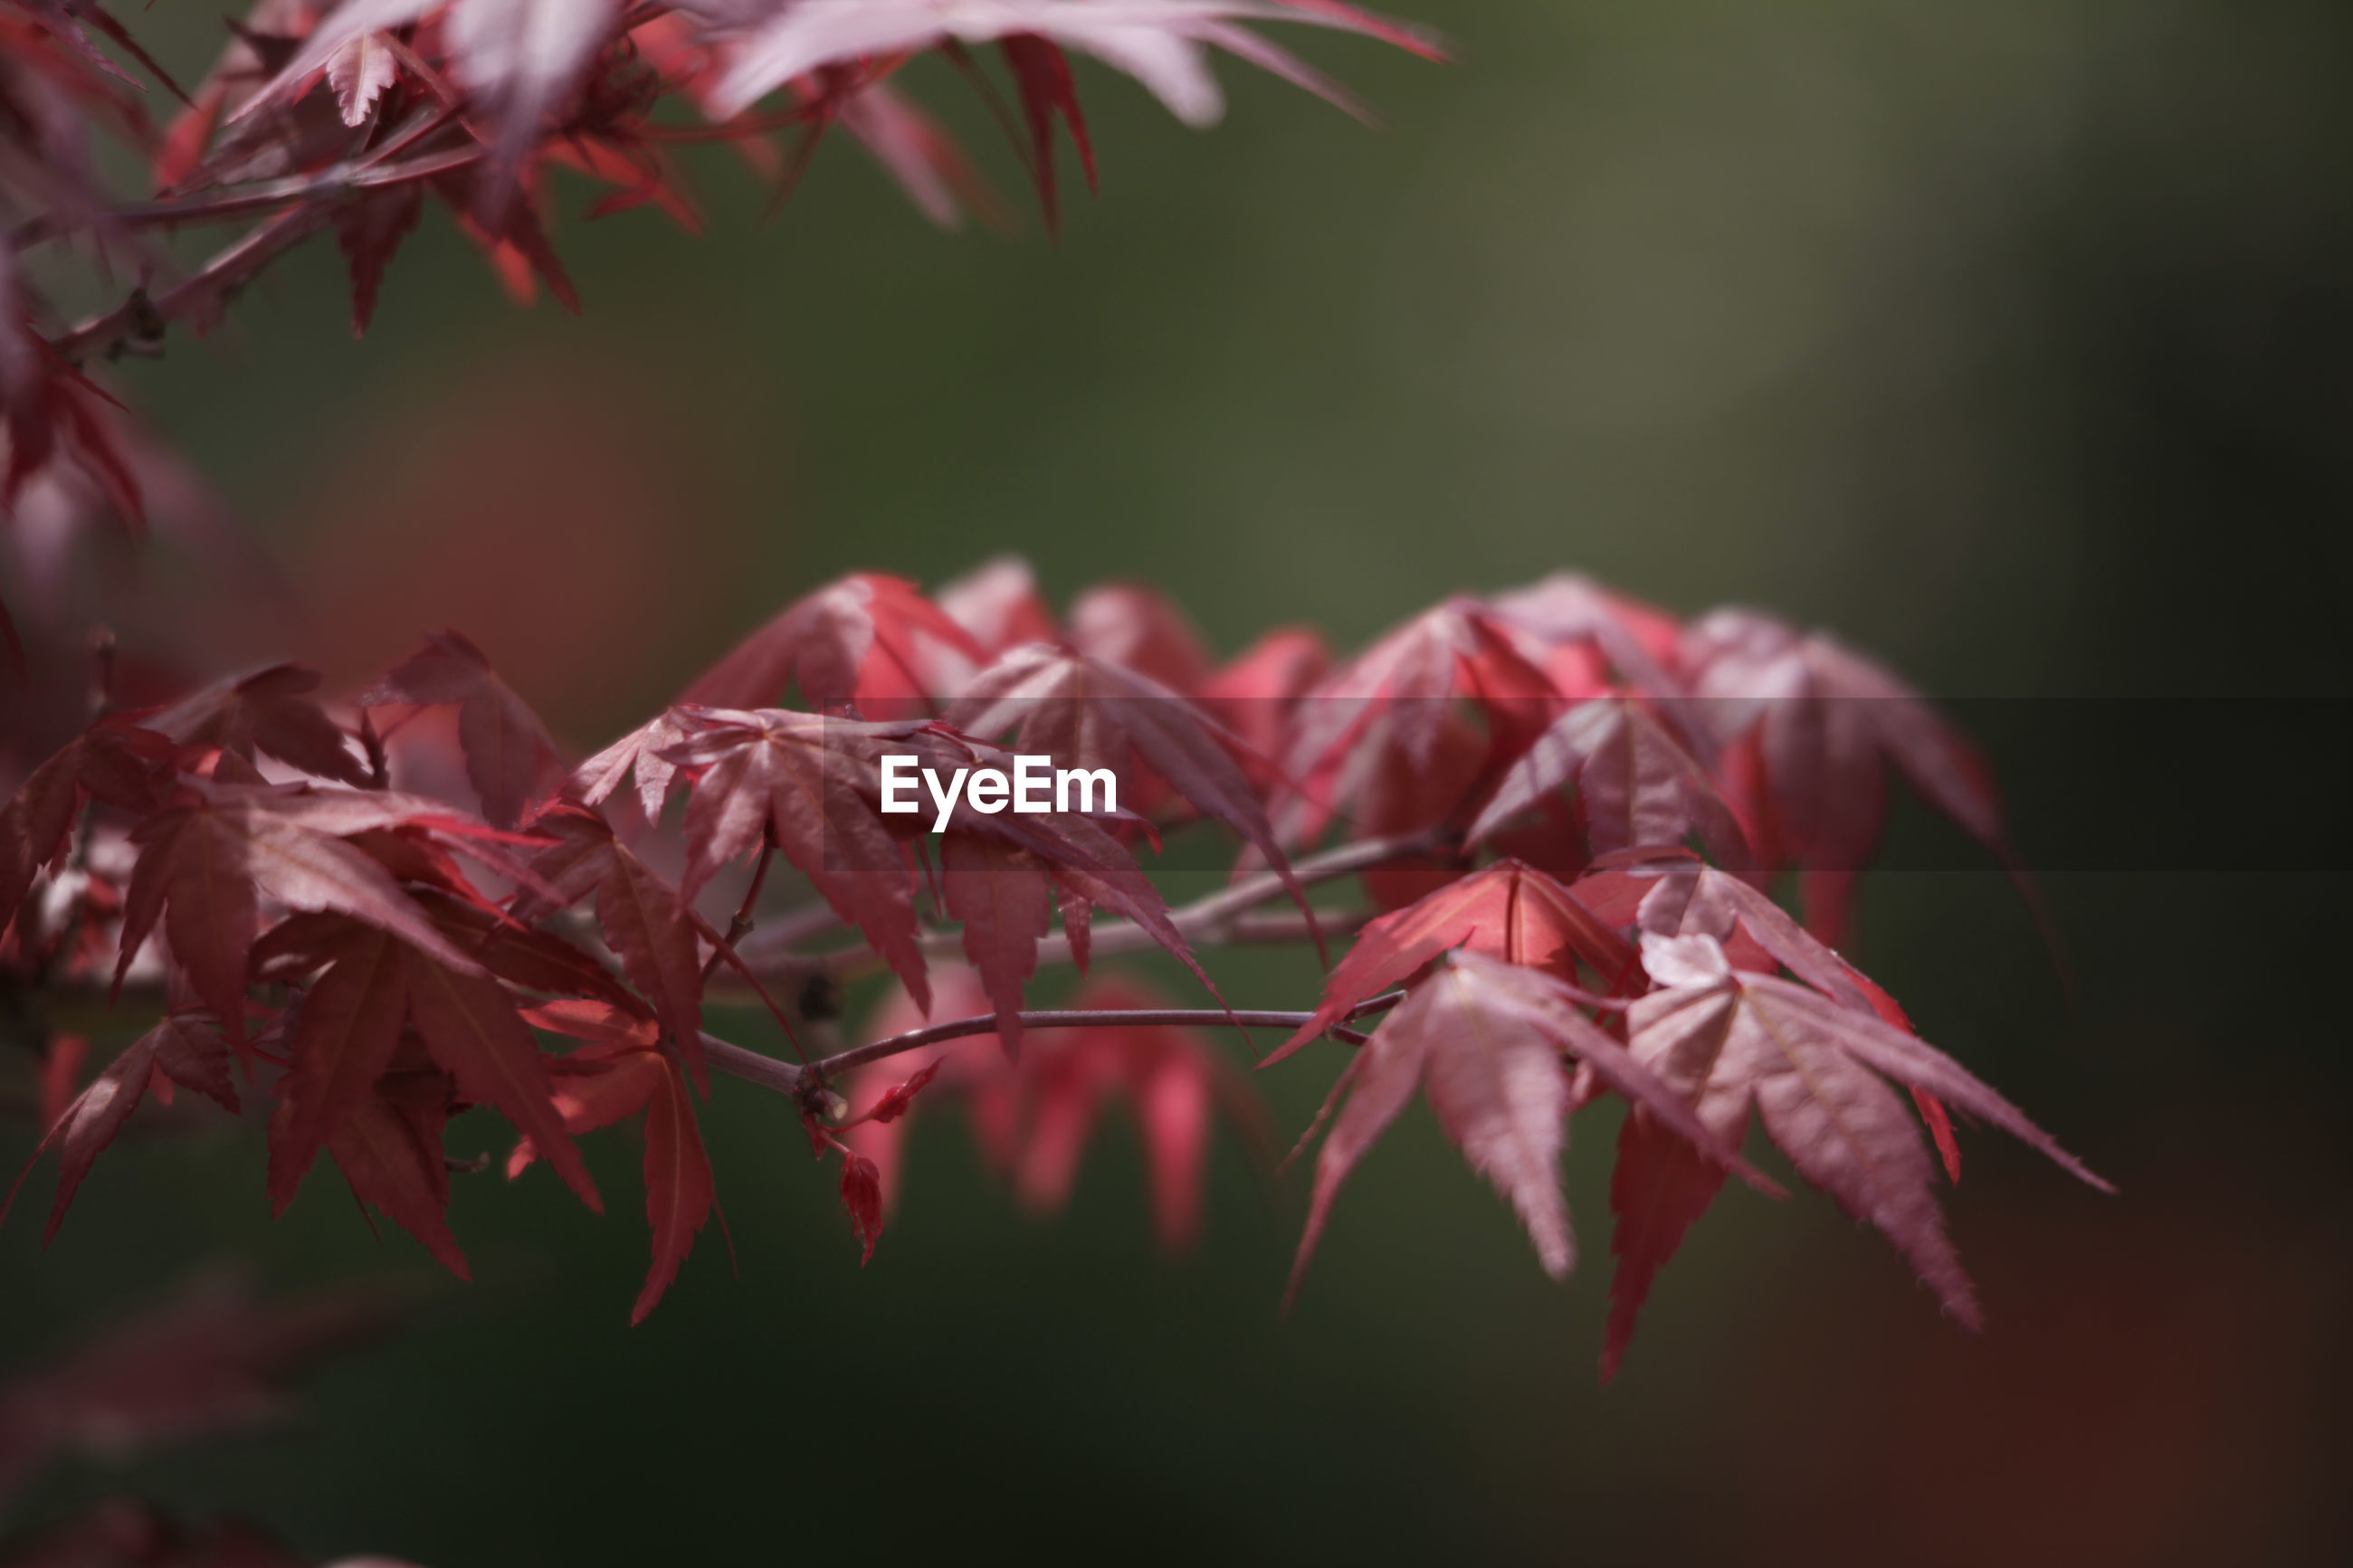 Close-up of red flowering plant against blurred background